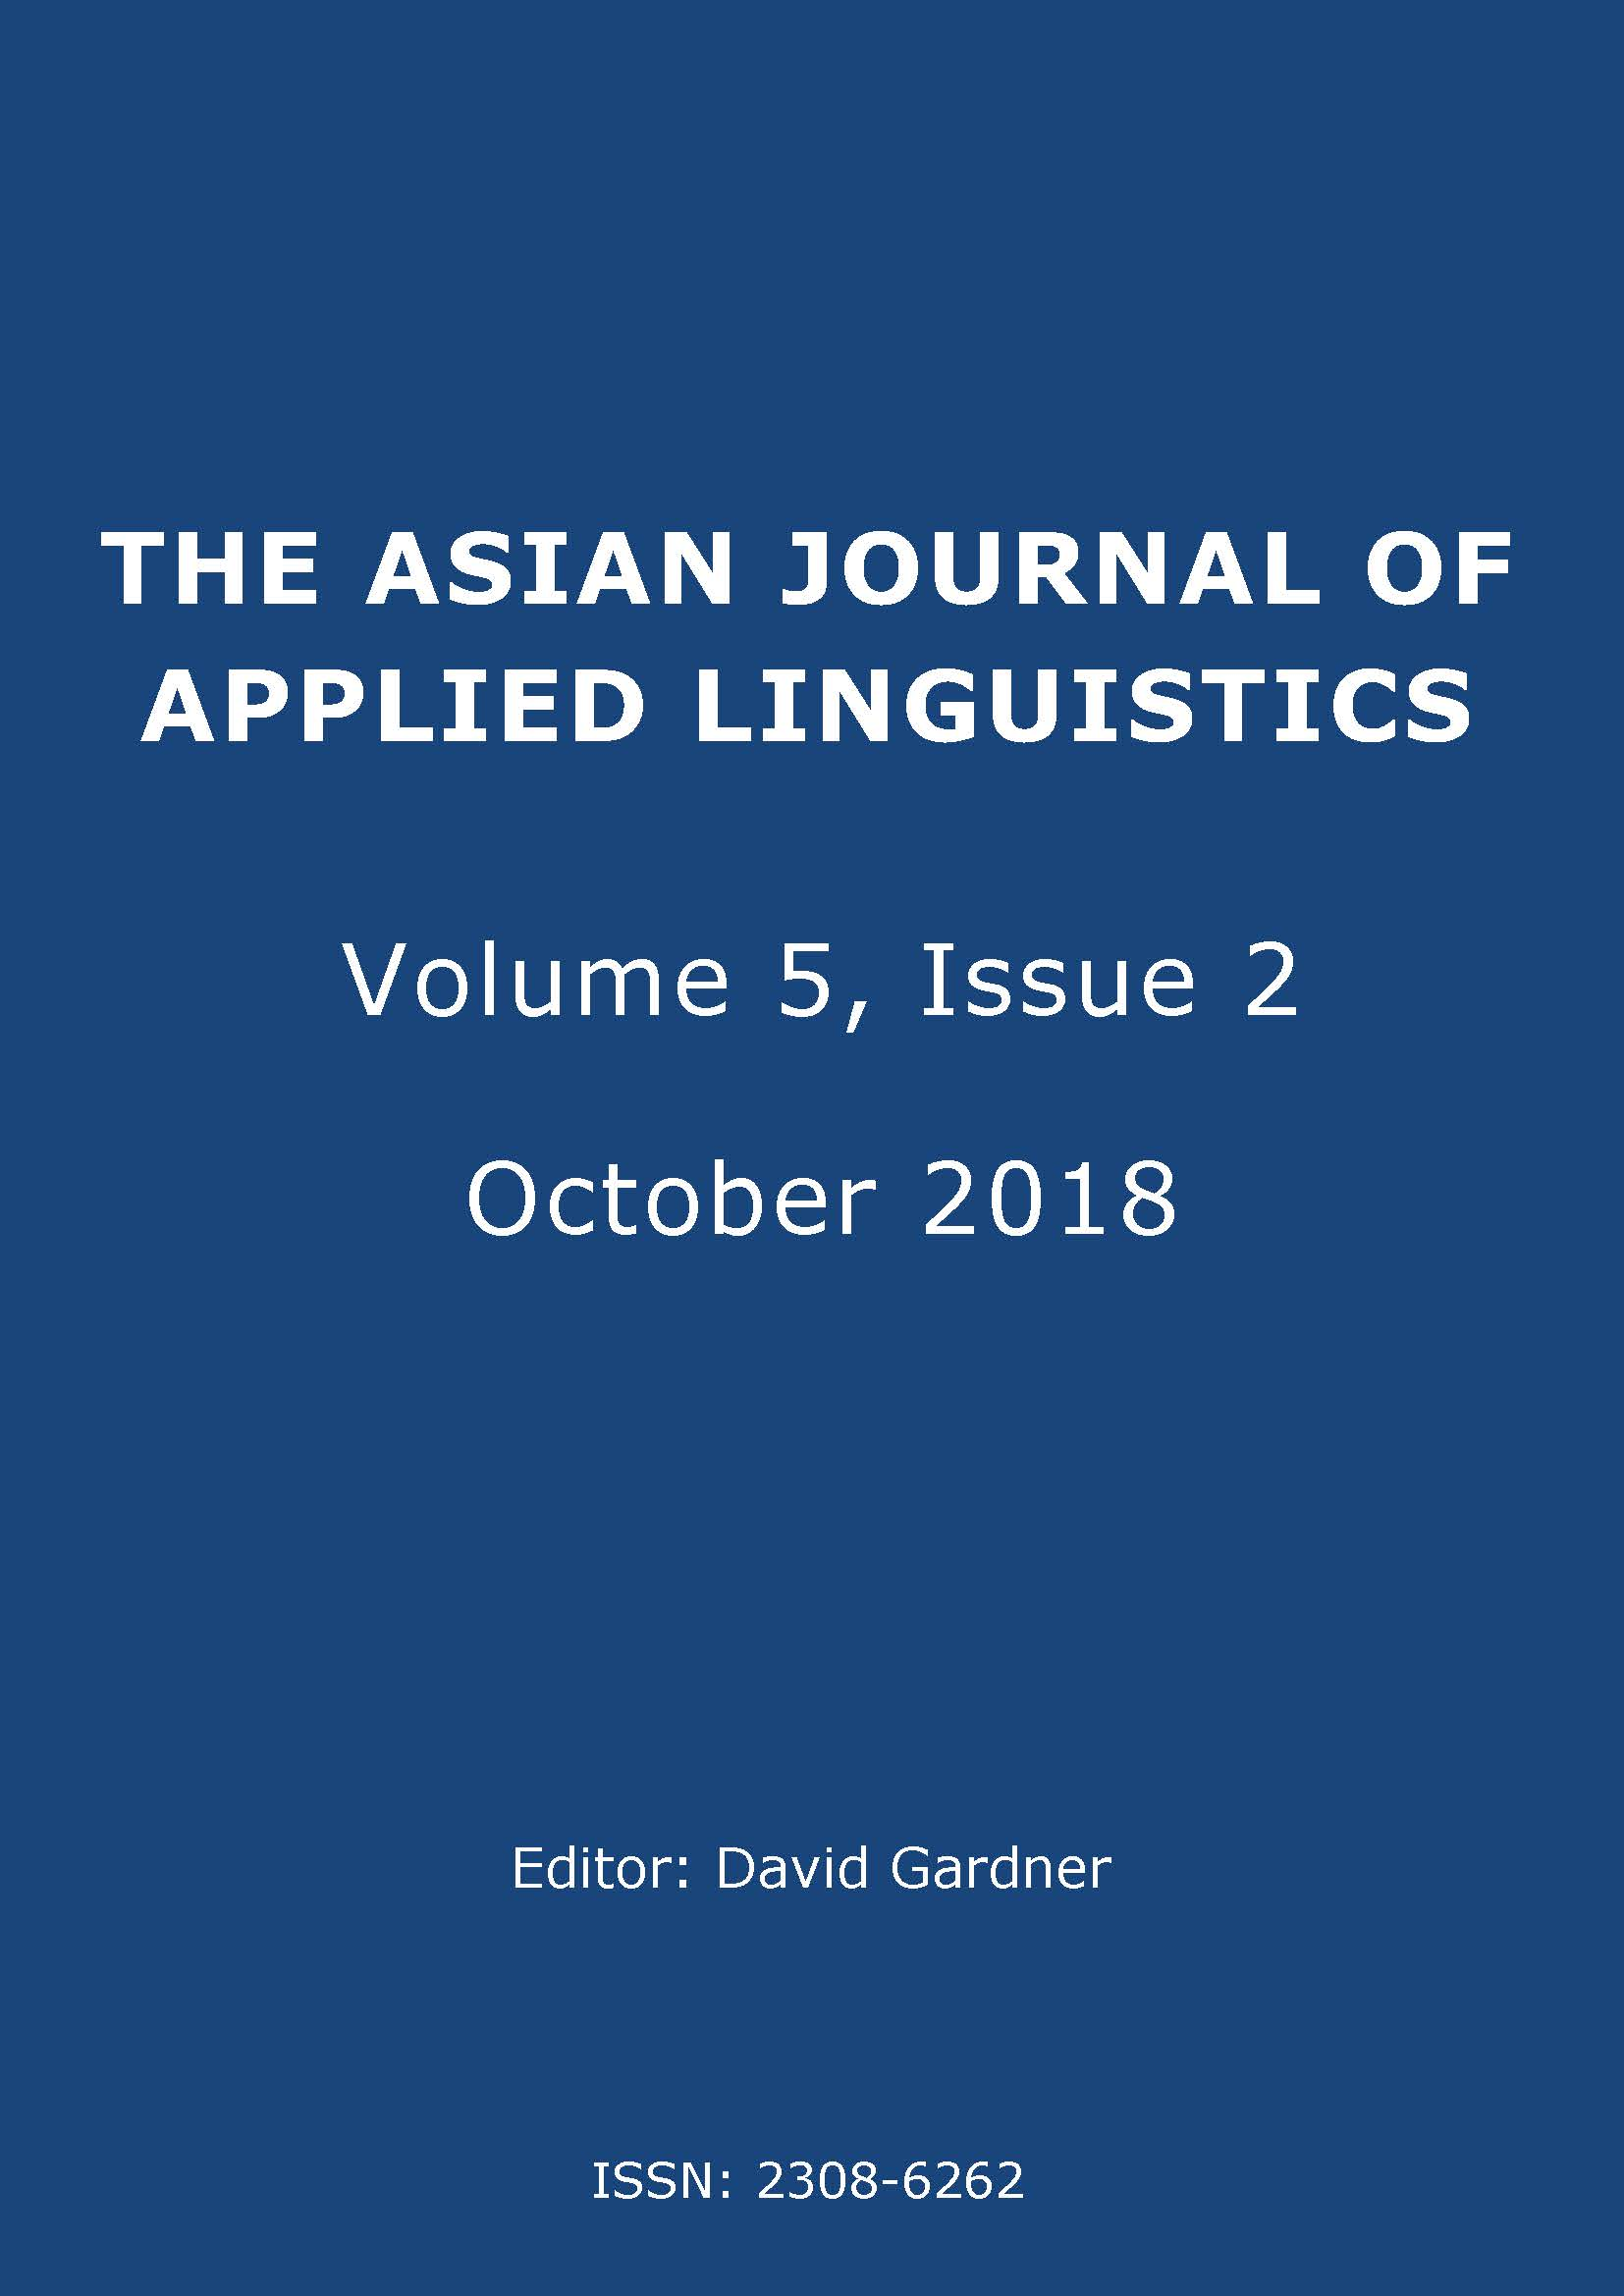 The Asian Journal of Applied Linguistics. Volume 5, Issue 2.